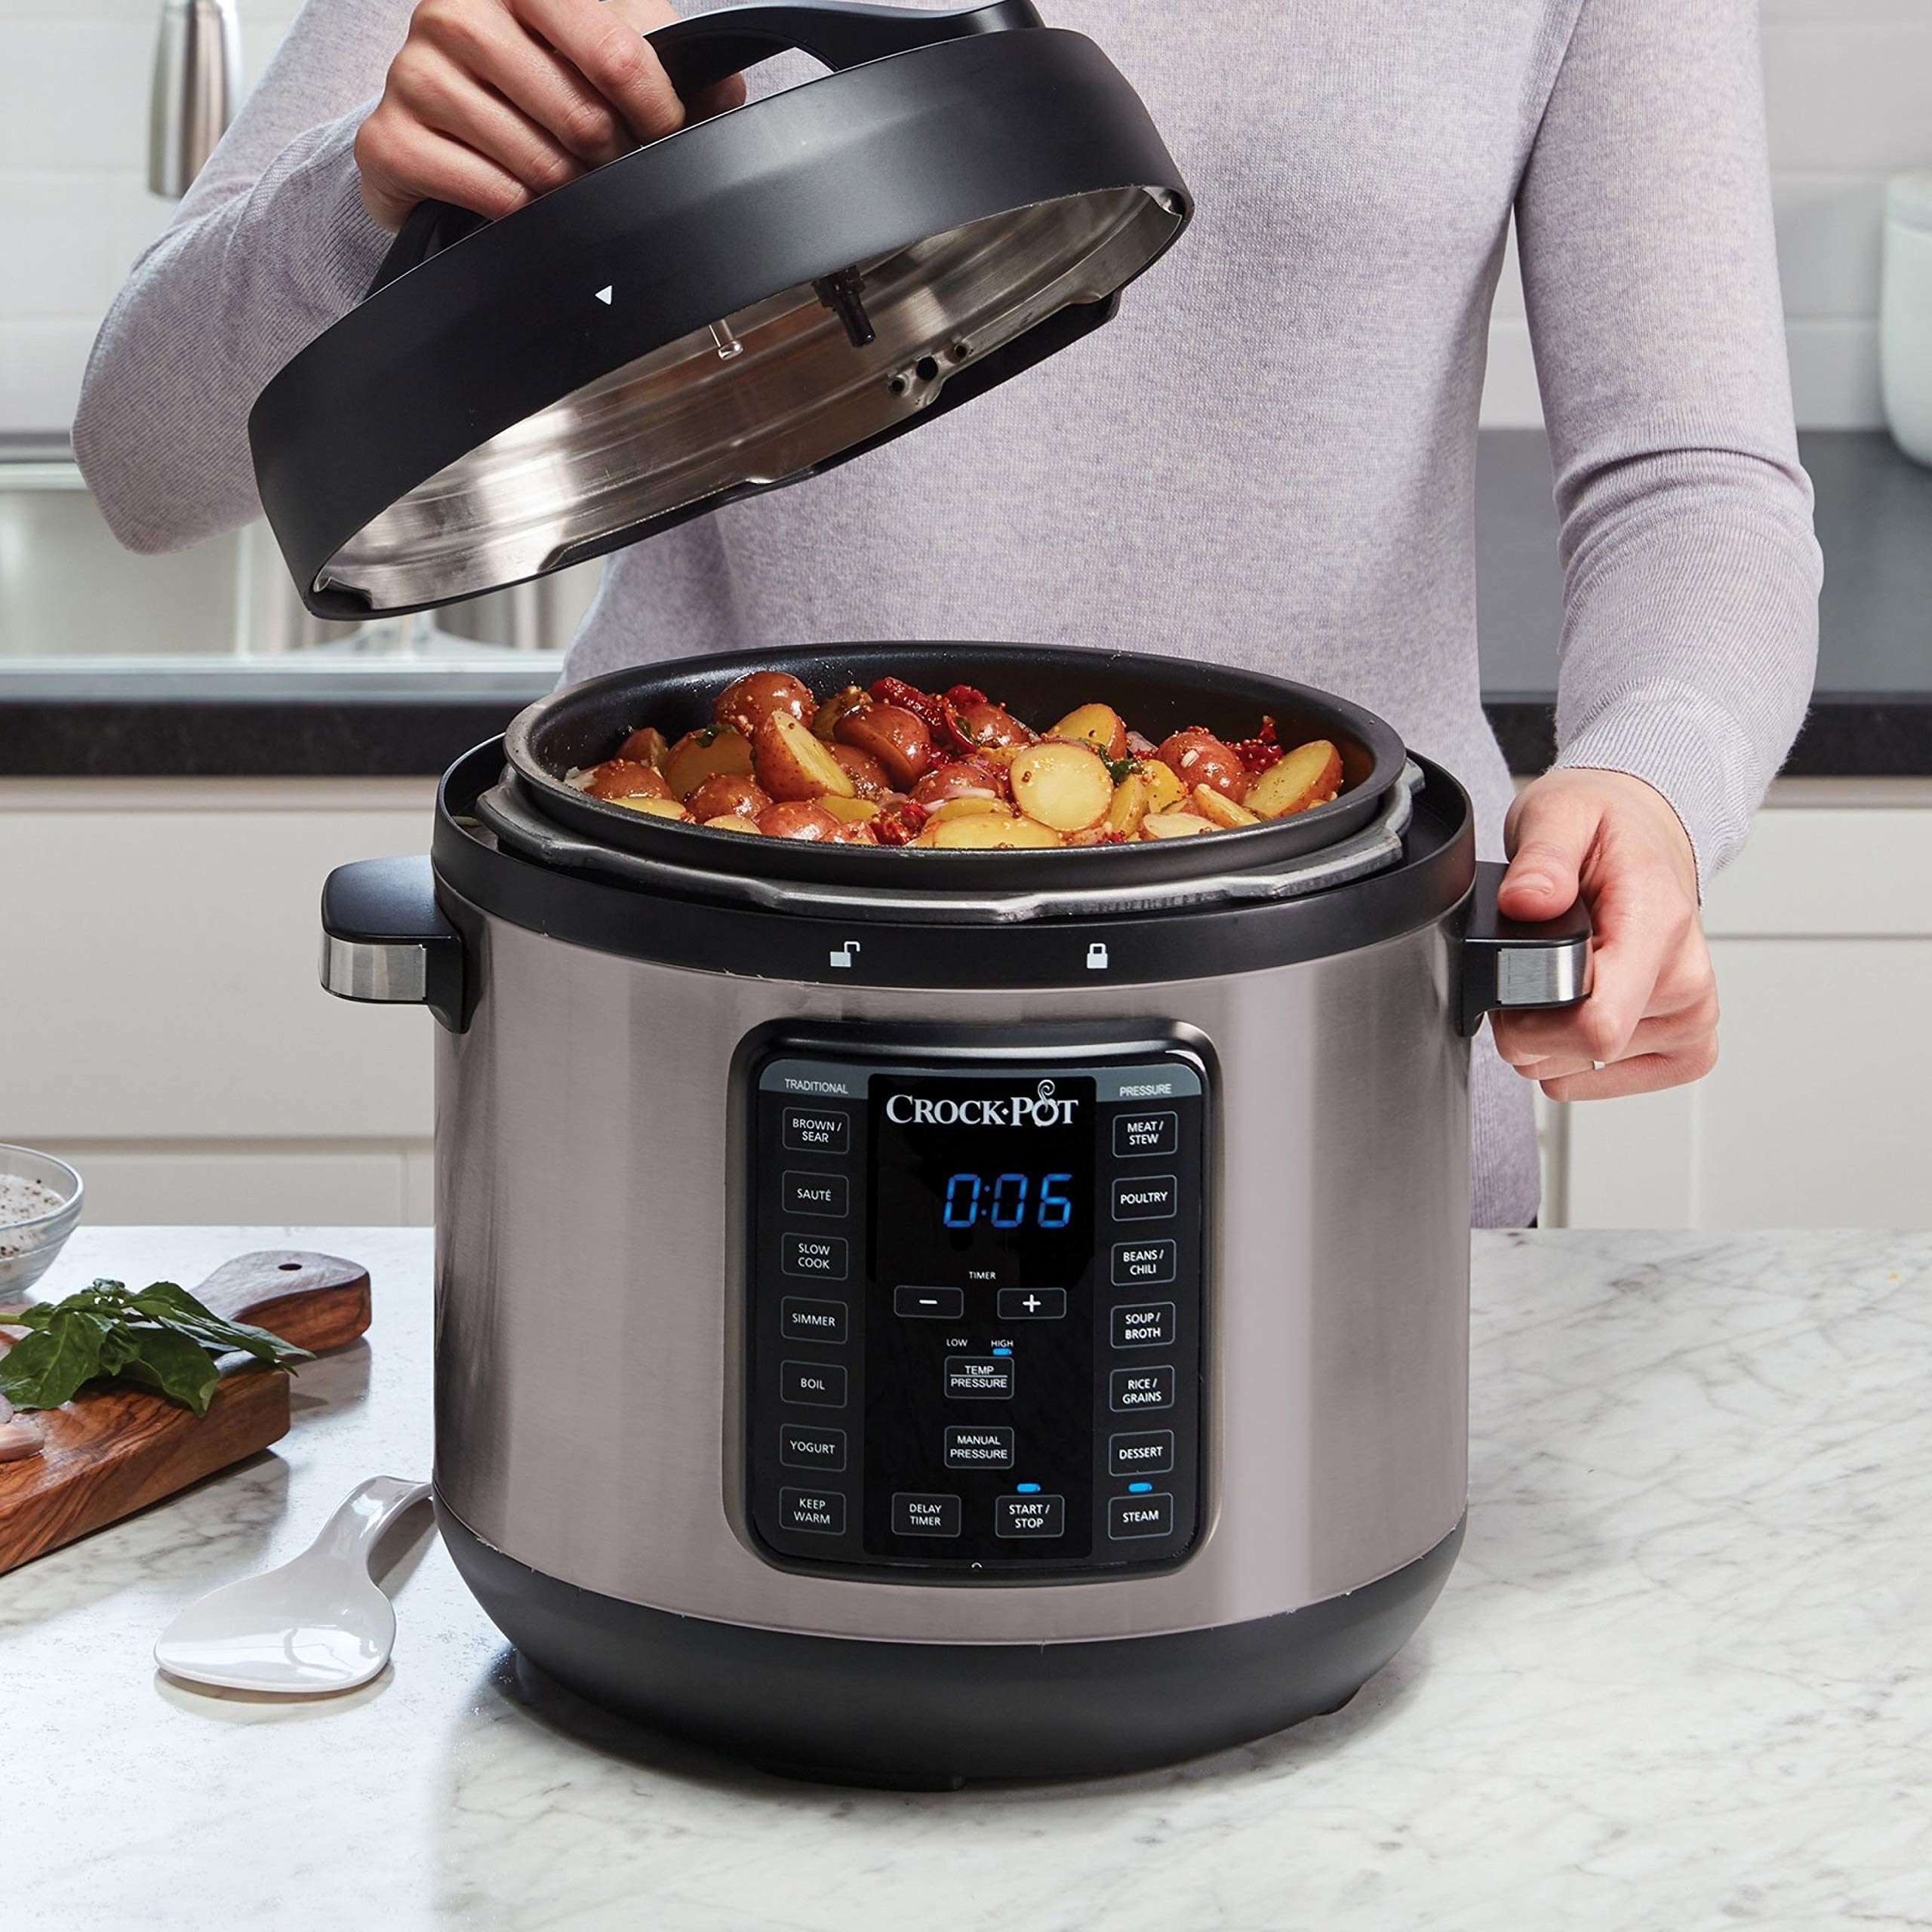 Crock-Pot 8-Quart Multi-Use XL Express Crock Programmable Slow Cooker and Pressure Cooker with Manual Pressure, Boil & Simmer, Black Stainless by Crock-Pot (Image #4)